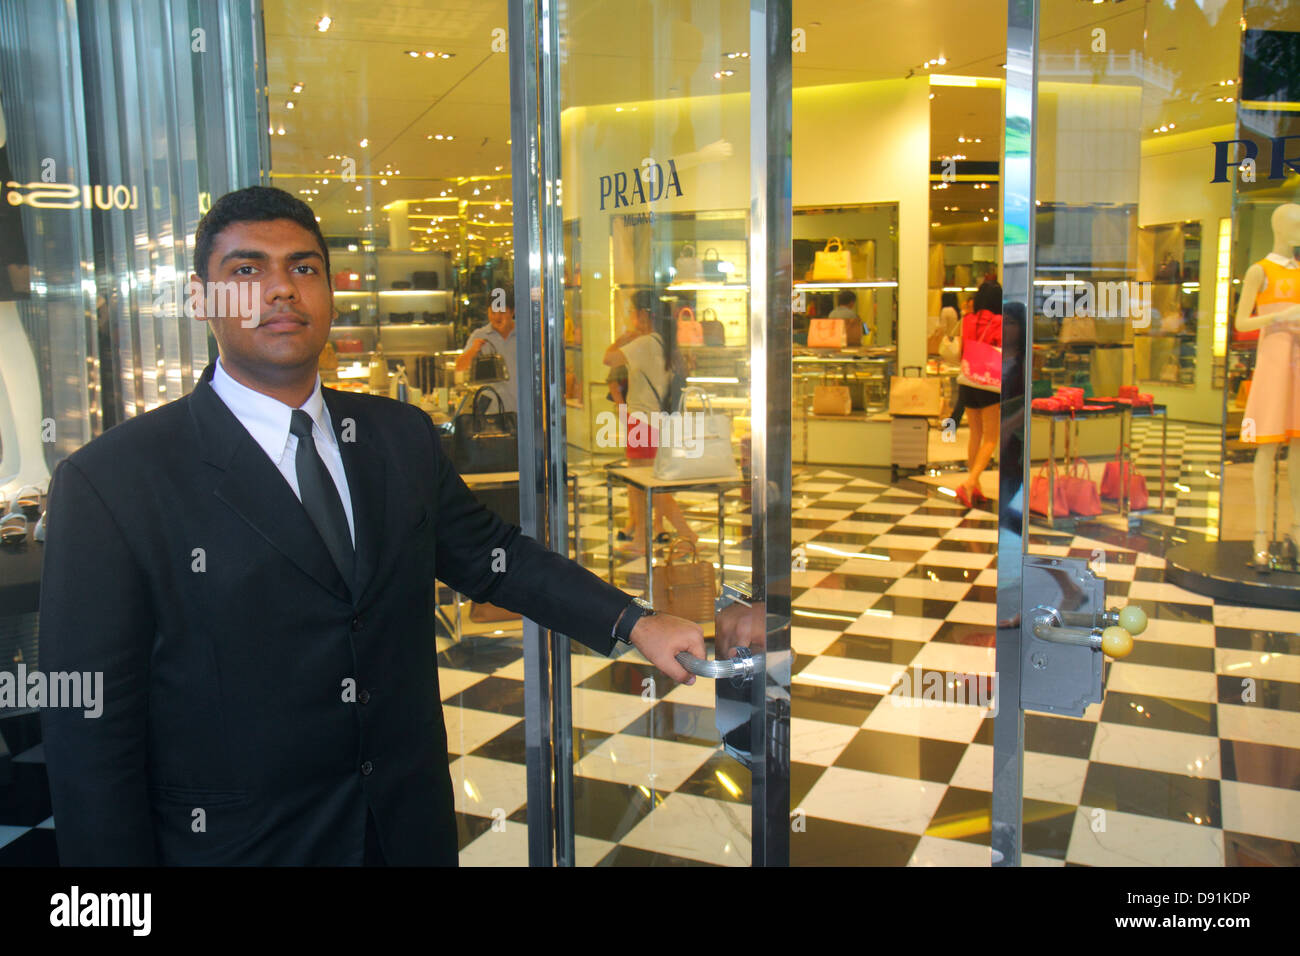 Singapore Orchard Road shopping Ion mall complex Asian man doorman Prada  Italian fashion designer women s handbags 9bf76e62d2